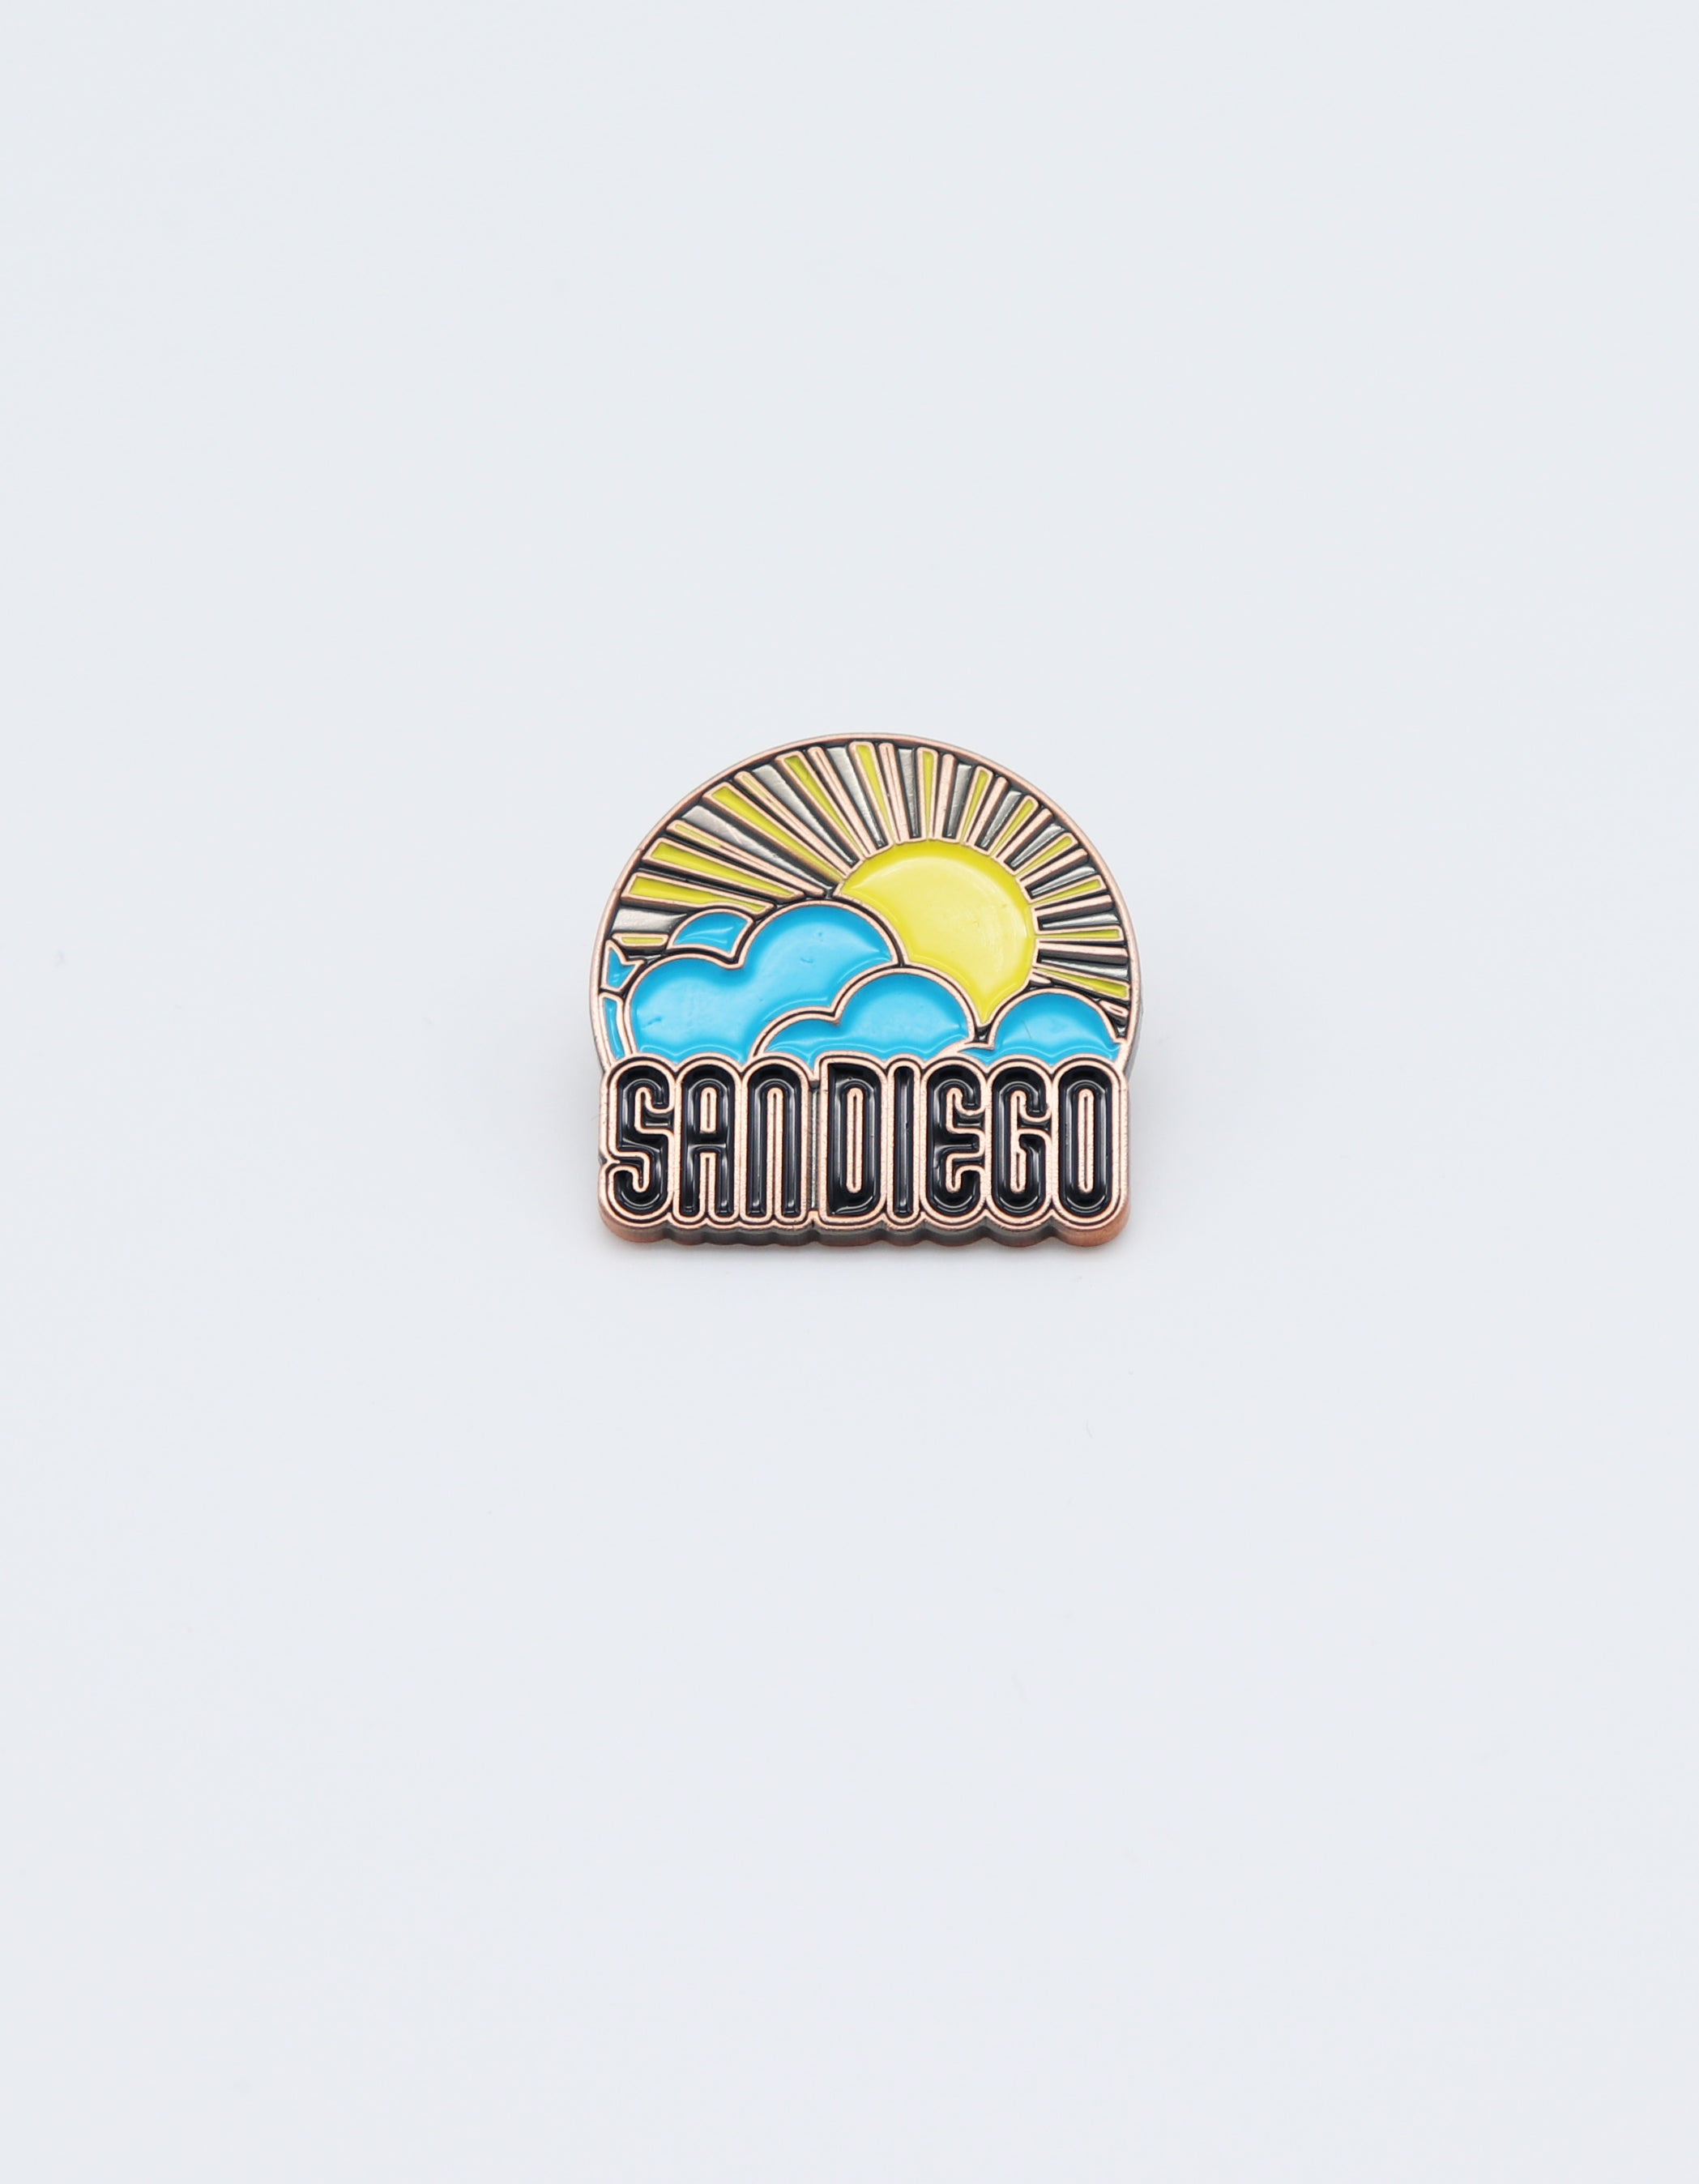 Bronze Sun and Clouds metal enamel pin in yellow and sky blue with verbiage San Diego in black fill letters